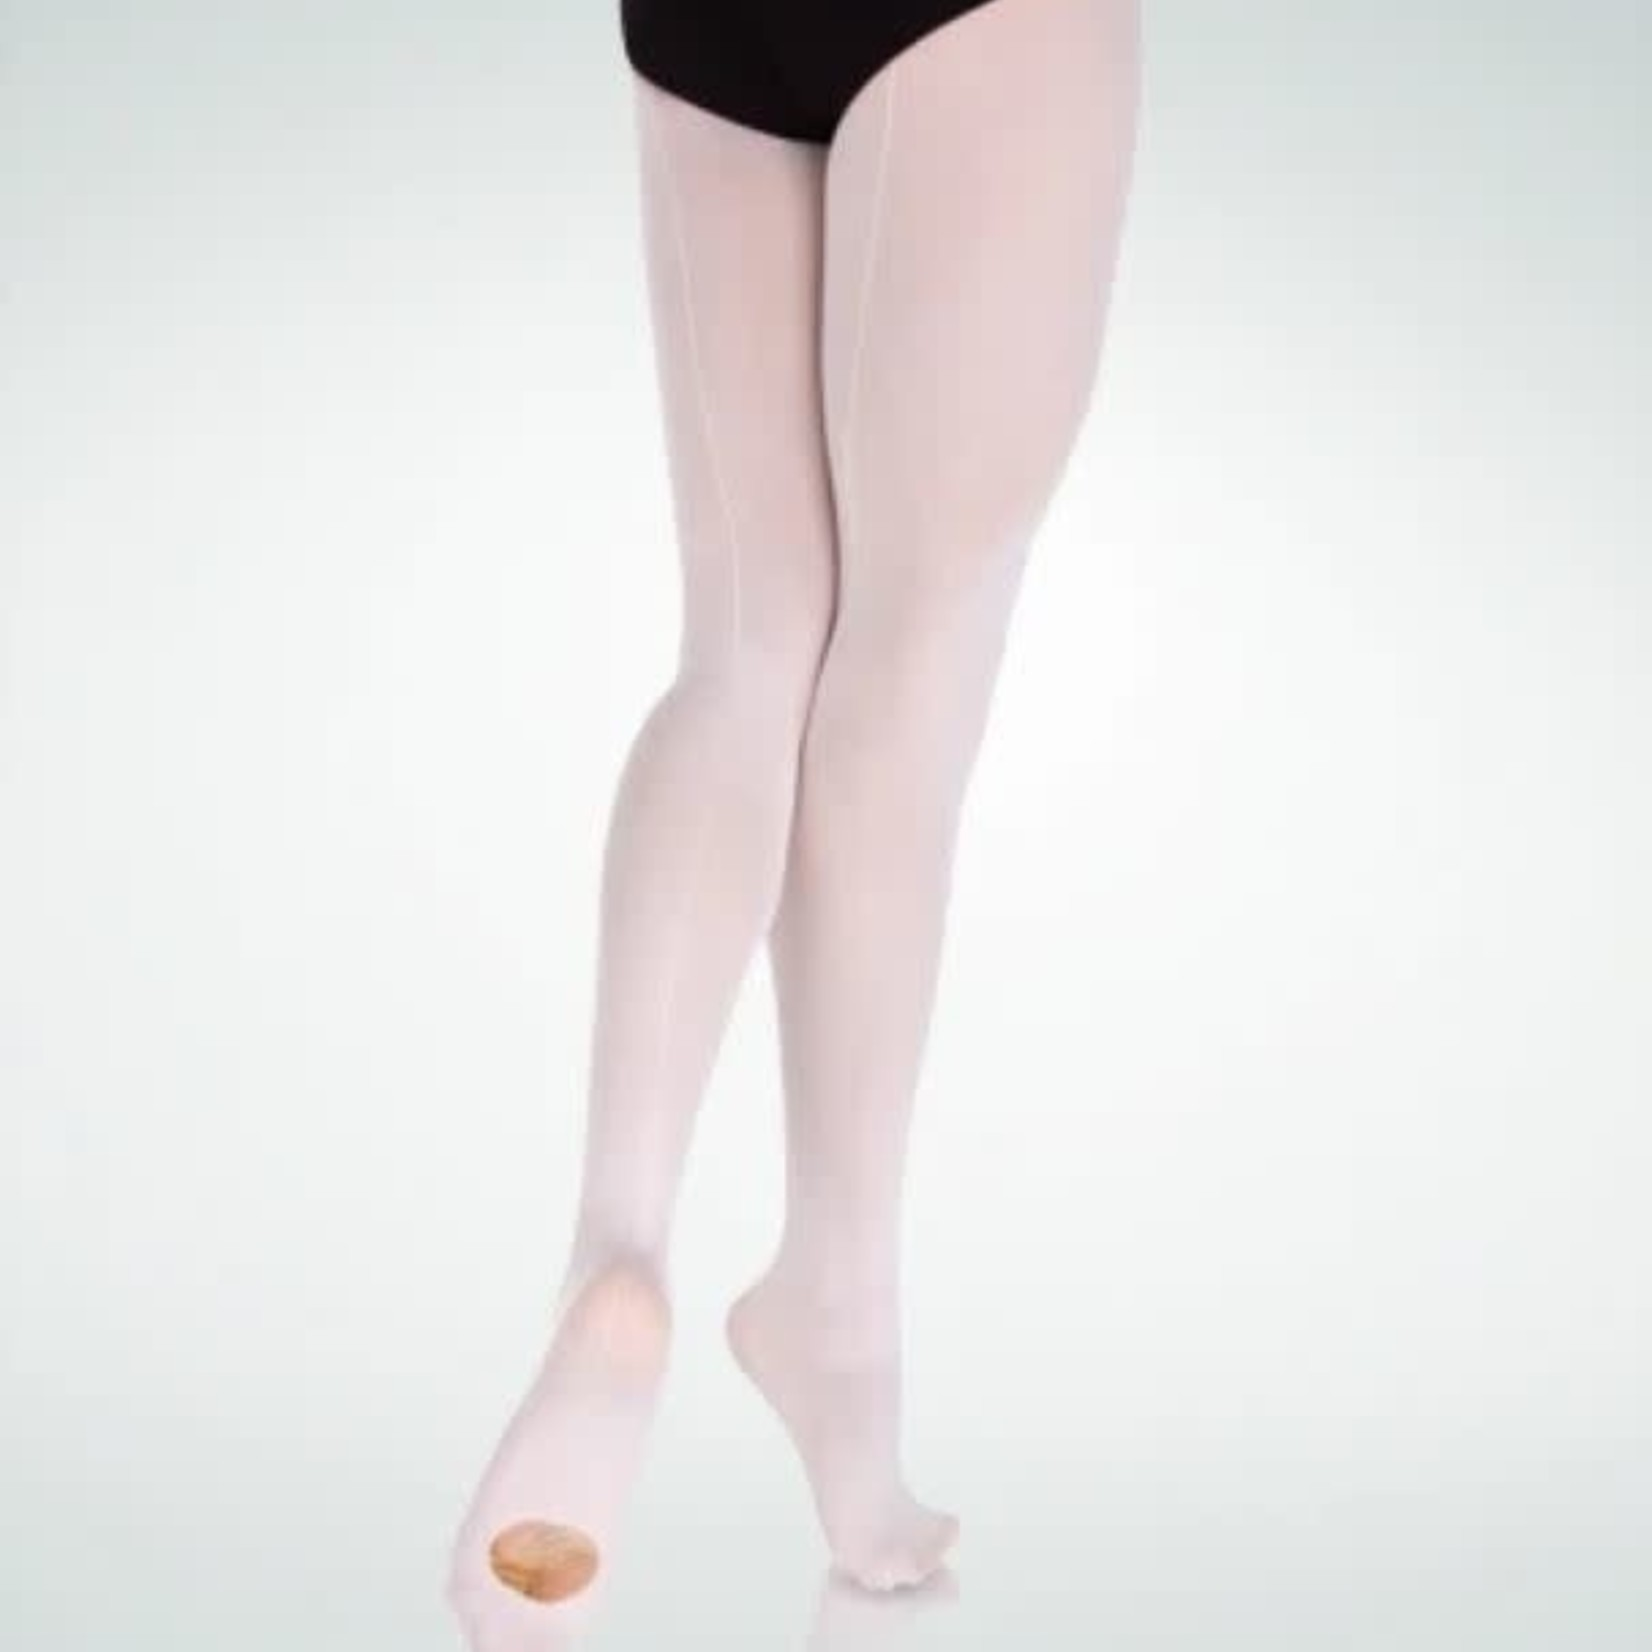 Body Wrappers Body Wrappers A39 Seamed Convertible Tights